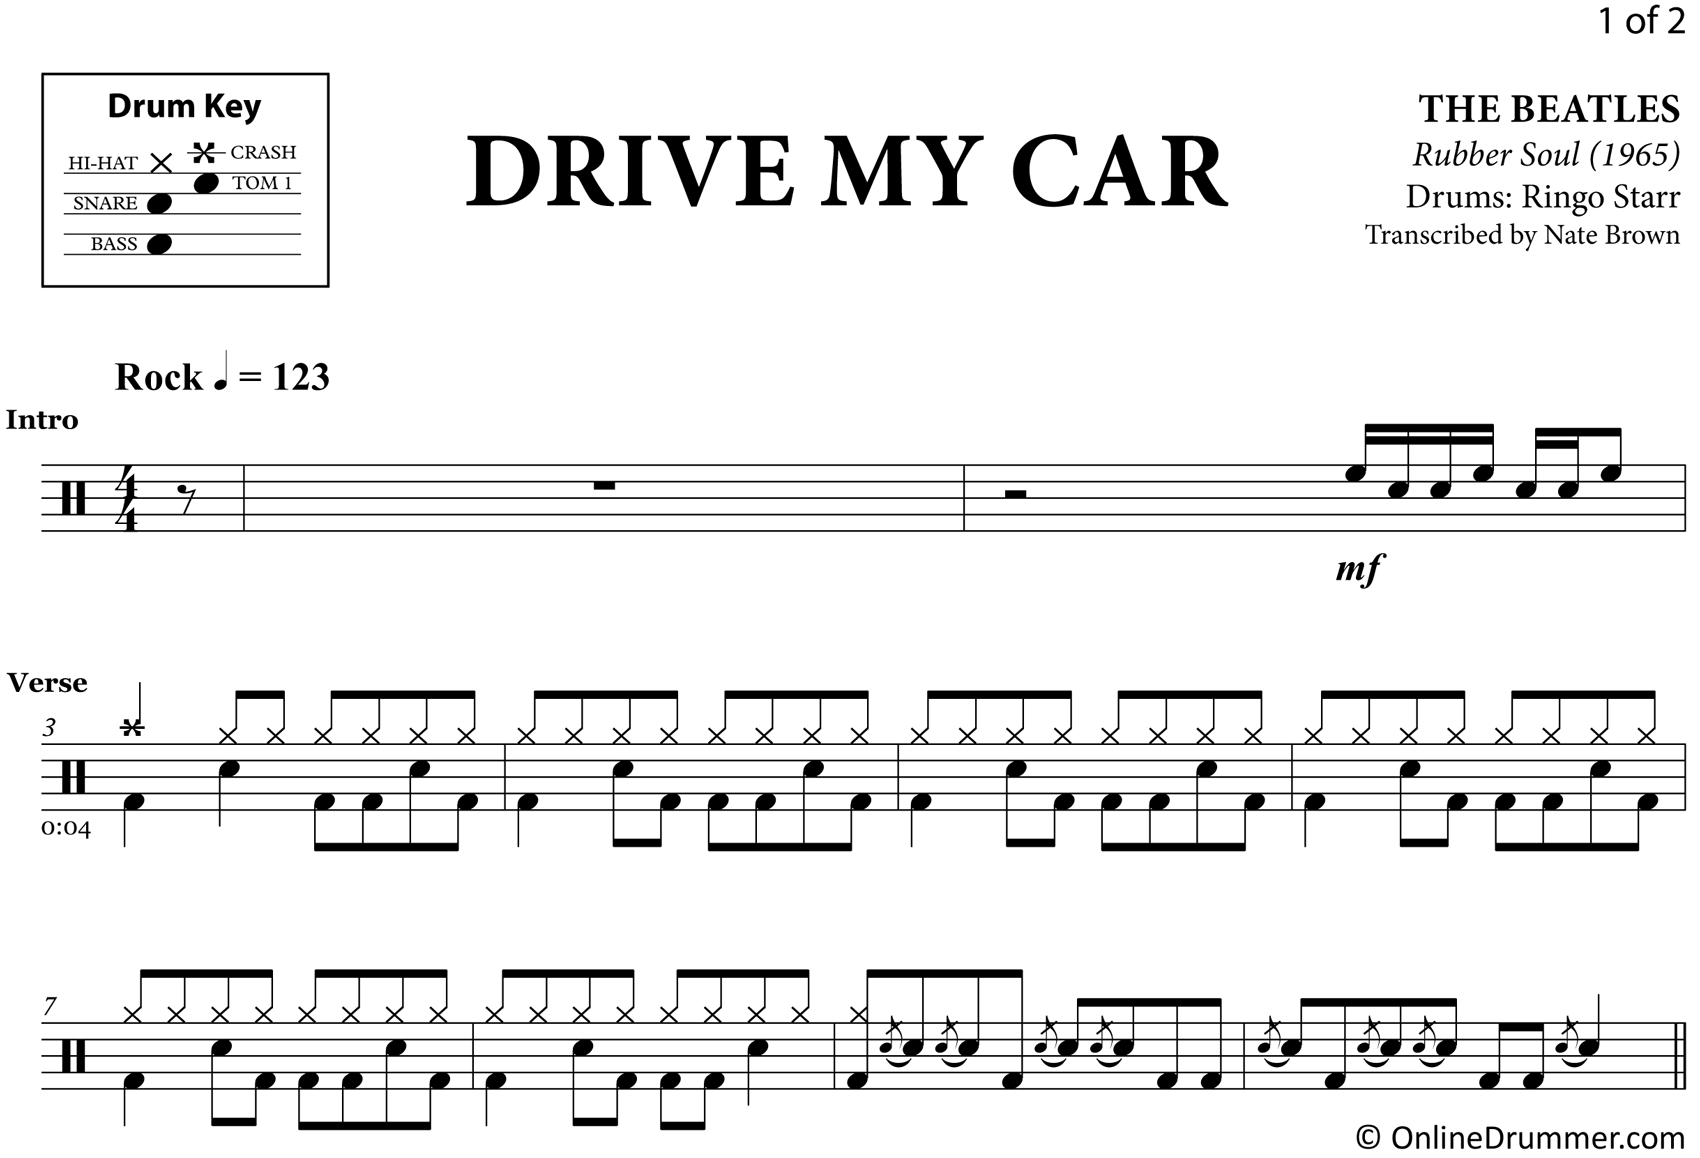 Drive My Car - The Beatles - Drum Sheet Music